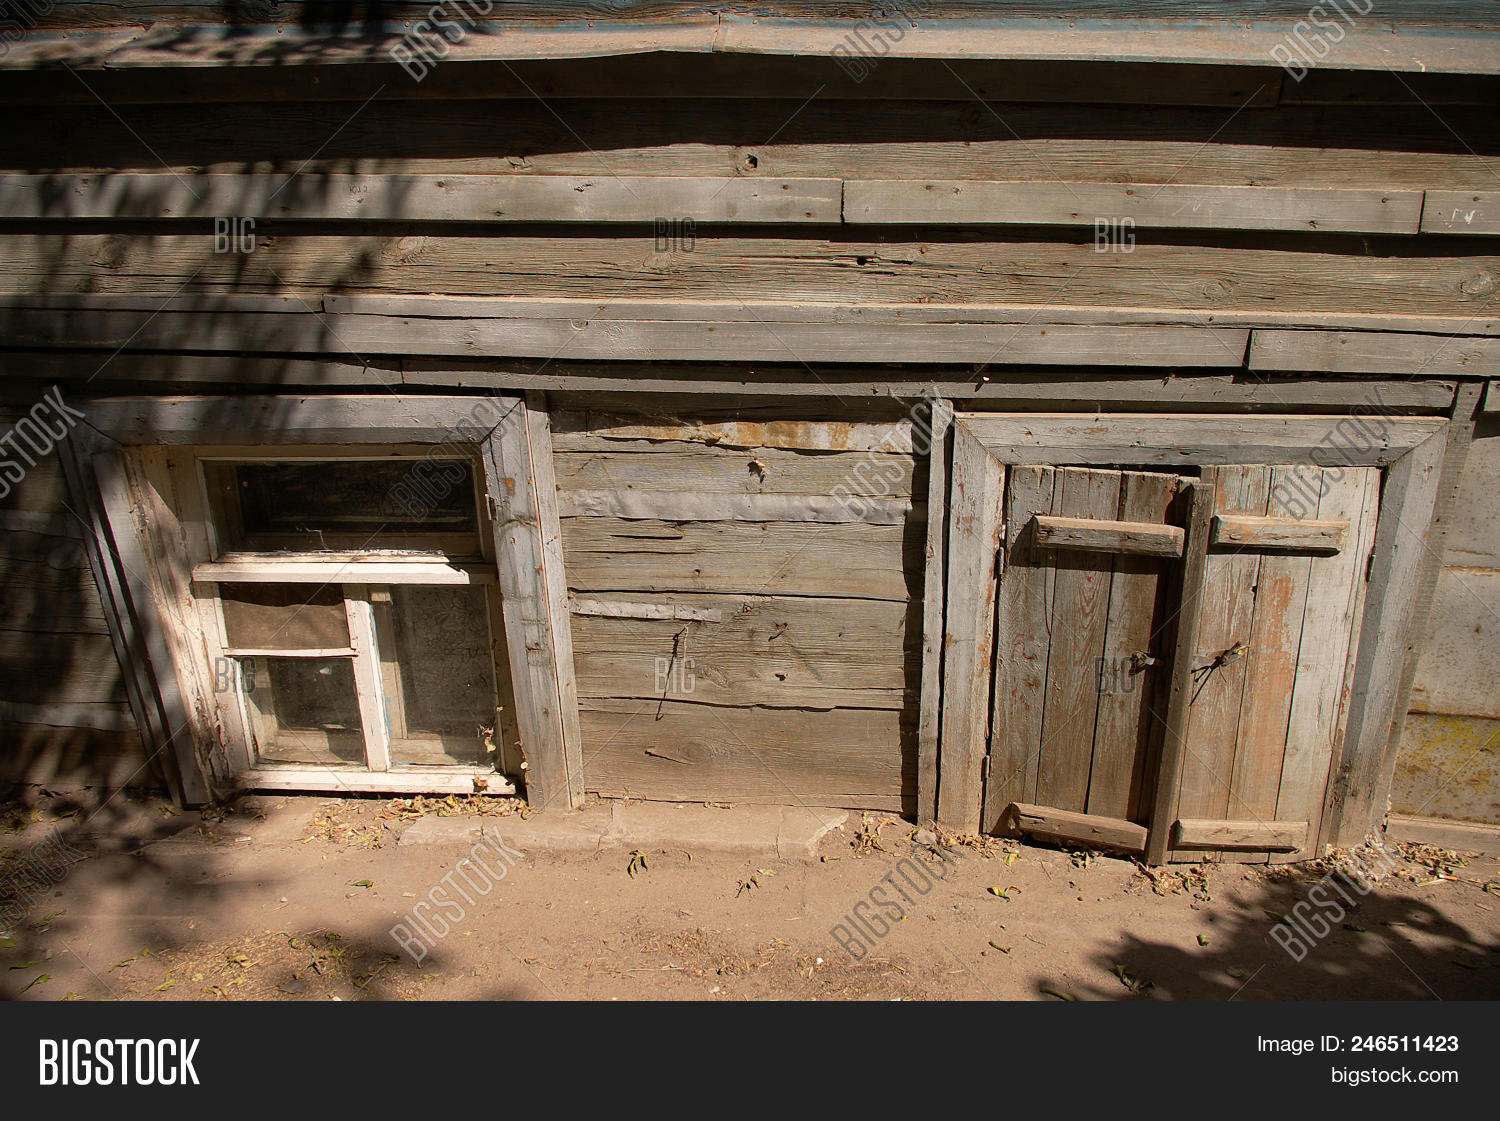 Wooden Windows Image Photo Free Trial Bigstock